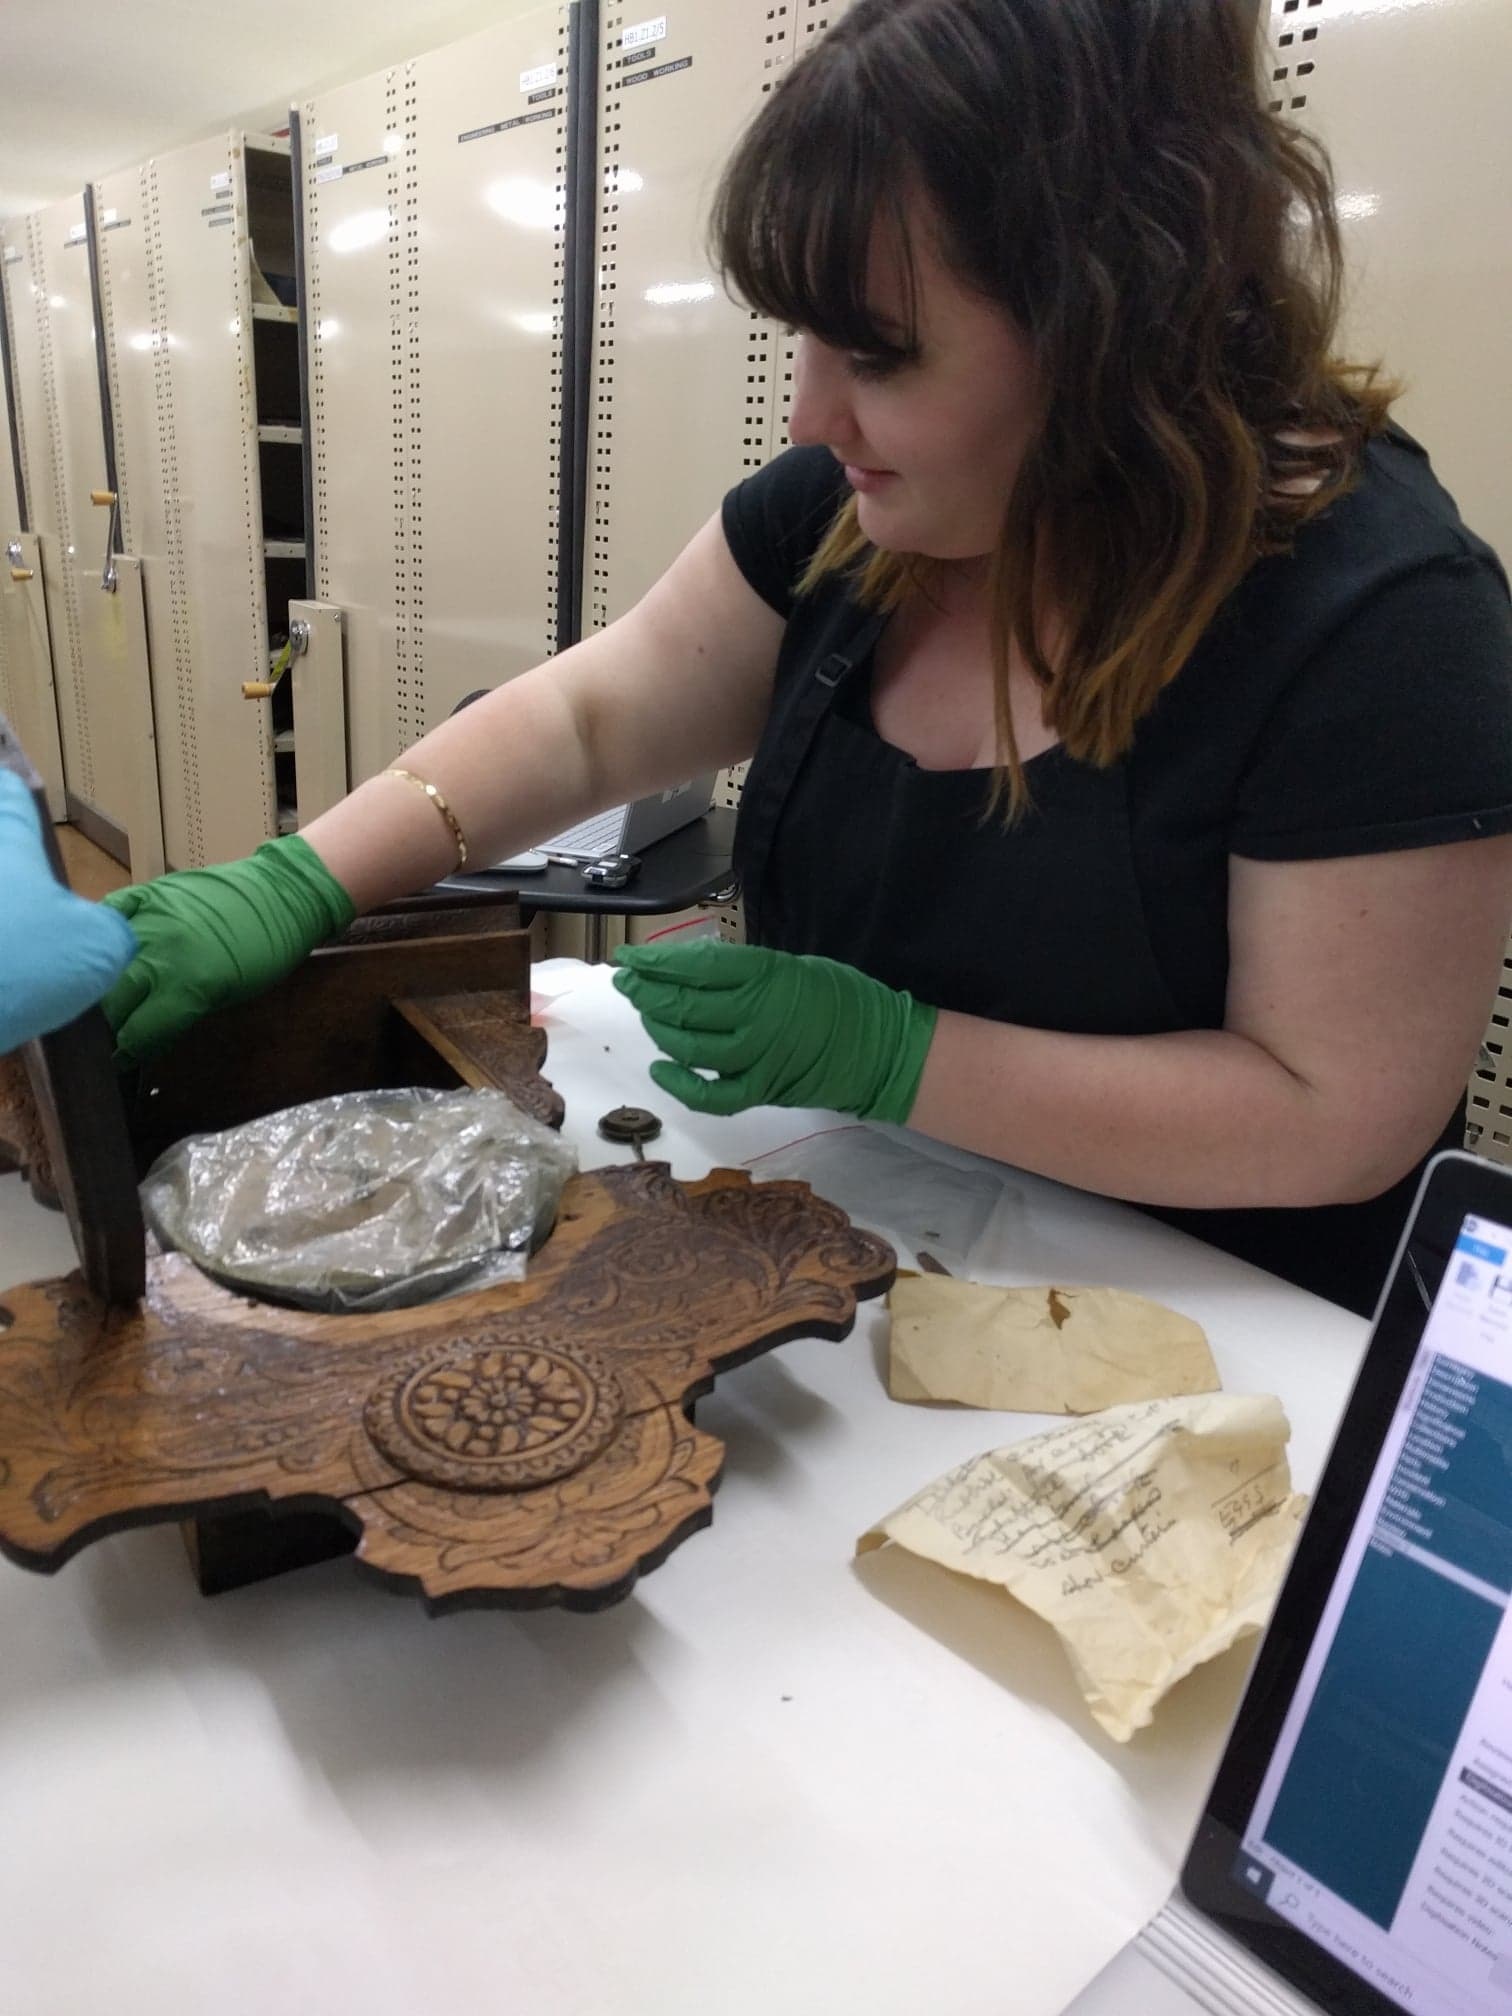 A woman wearing latex gloves in the process of cleaning a carved, wooden collection item. There is a dramatic difference between the cleaned and uncleaned areas, with a dark coating of dust having been removed. Behind her is a row of compactus bays.